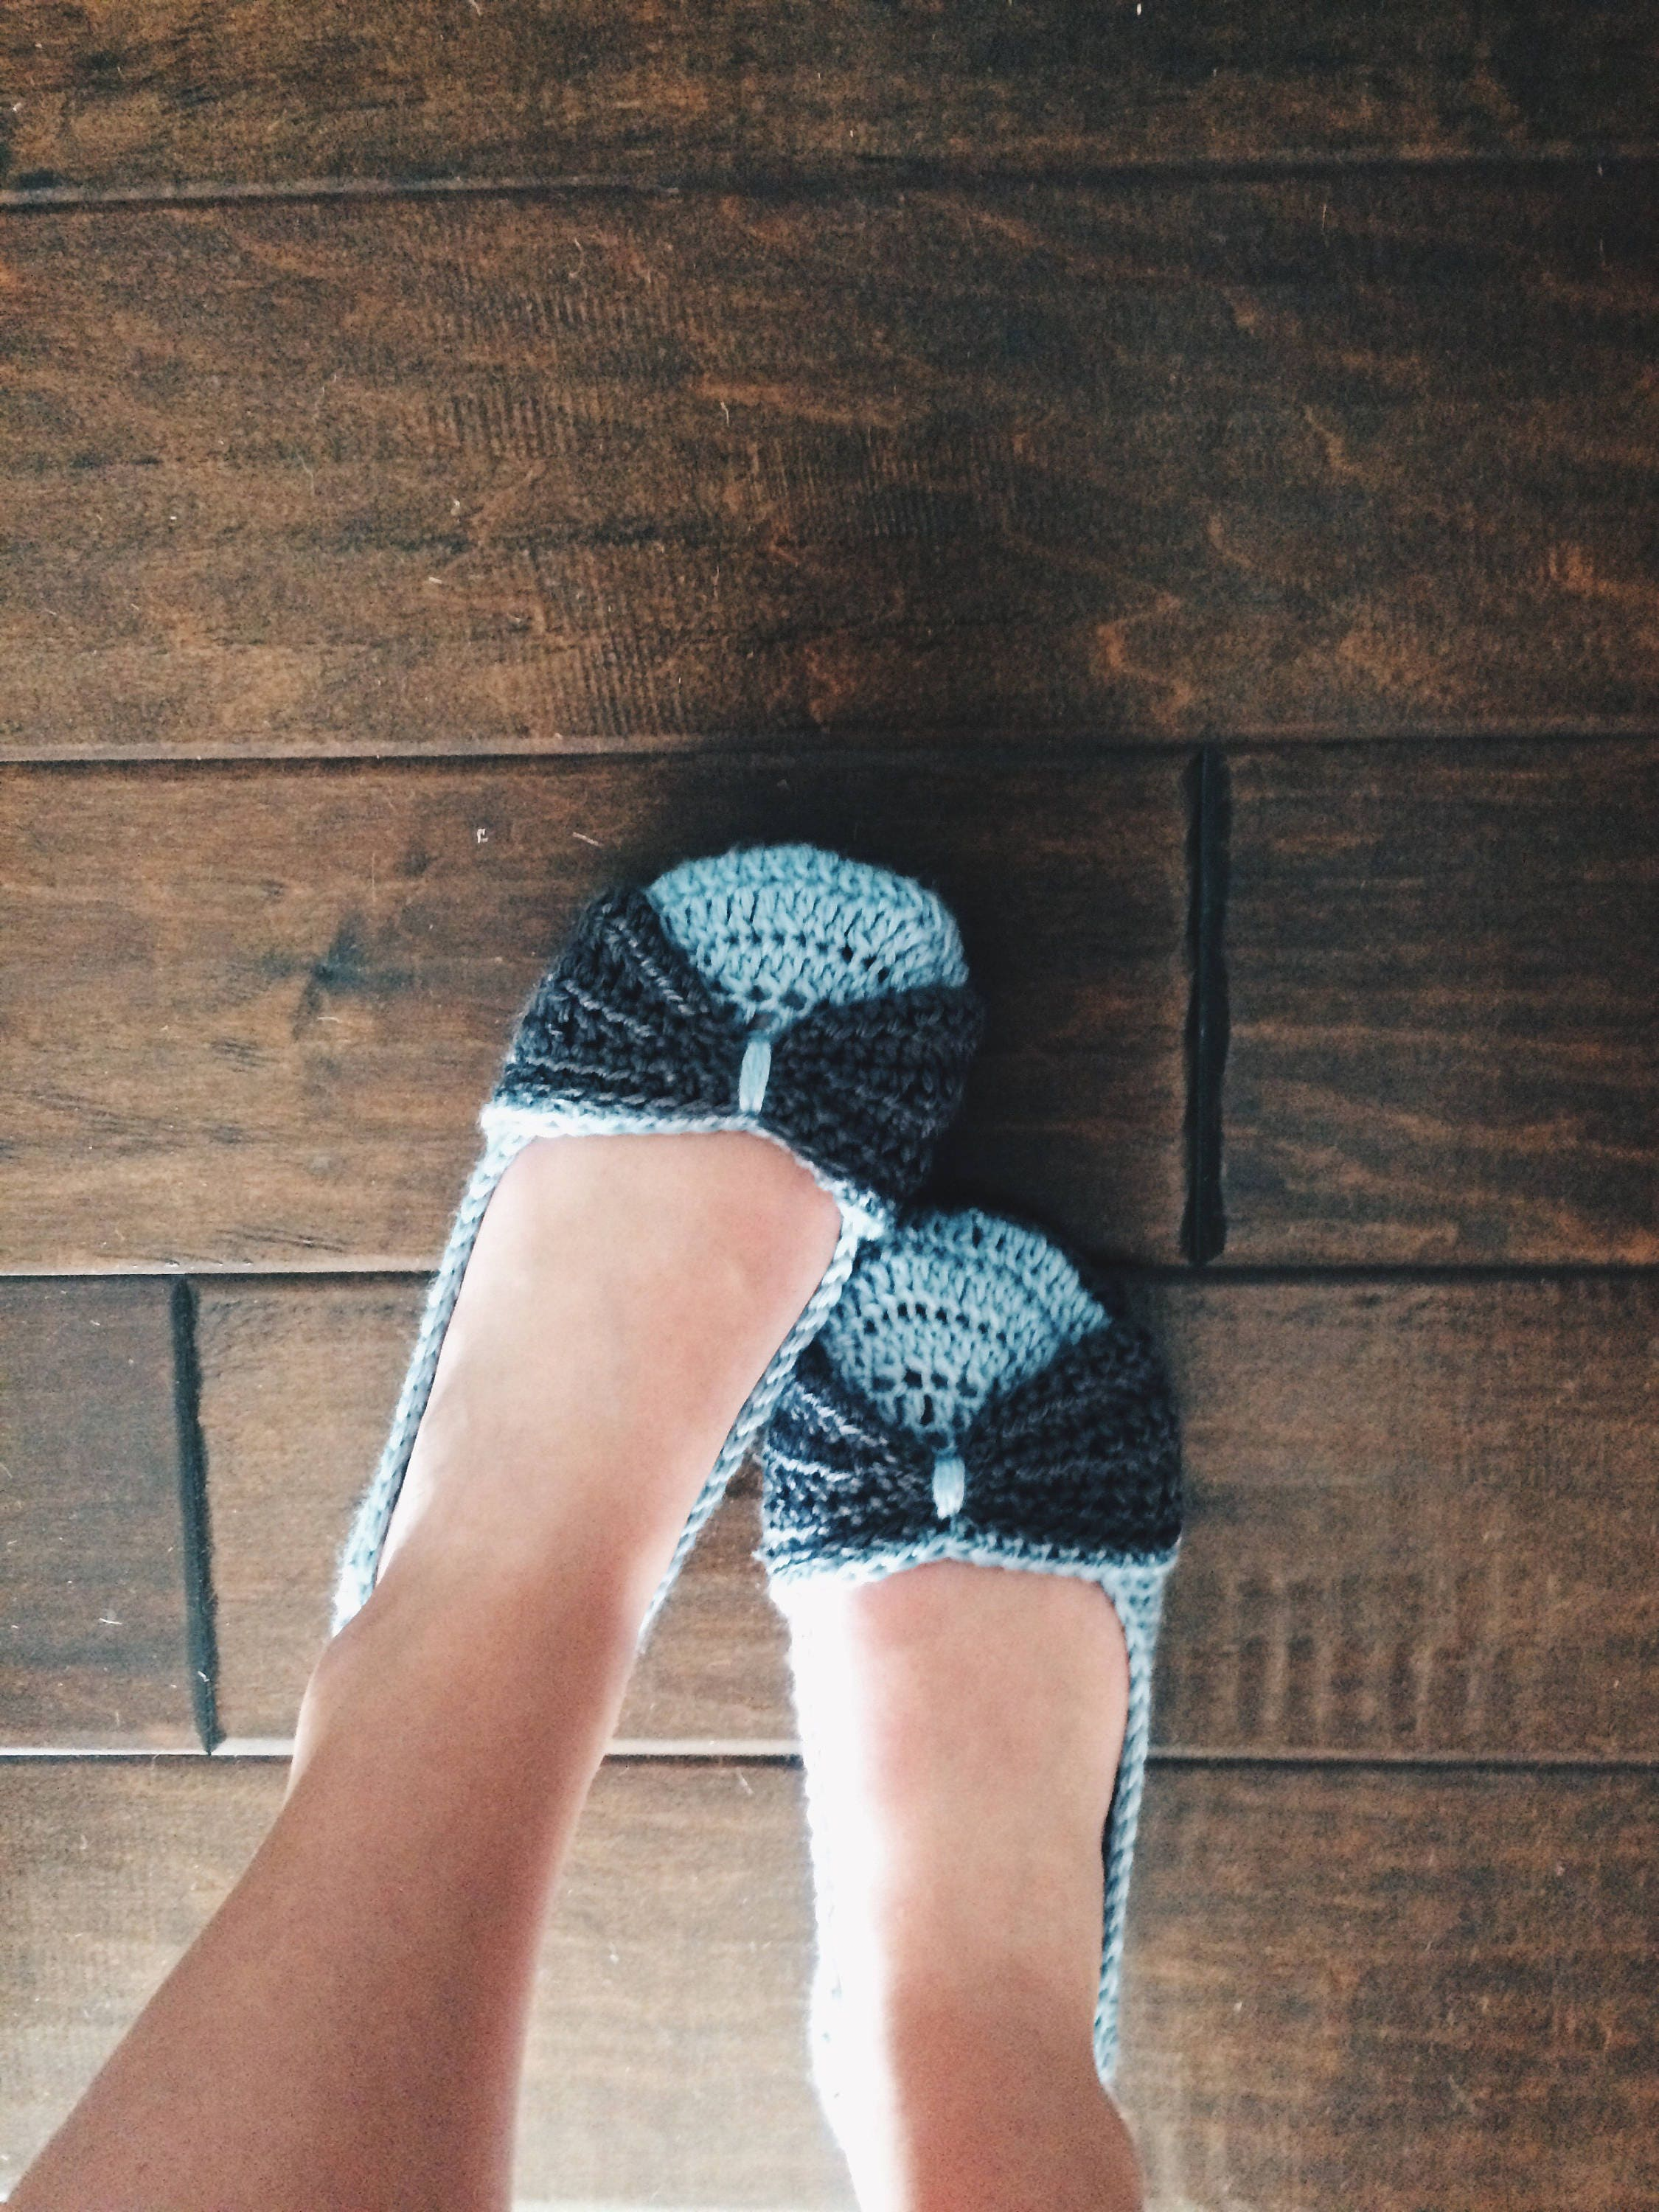 9aa8781dd8891 Crochet slippers - Women's Crochet House shoes - bow slippers - blue and  gray - custom made knit slippers